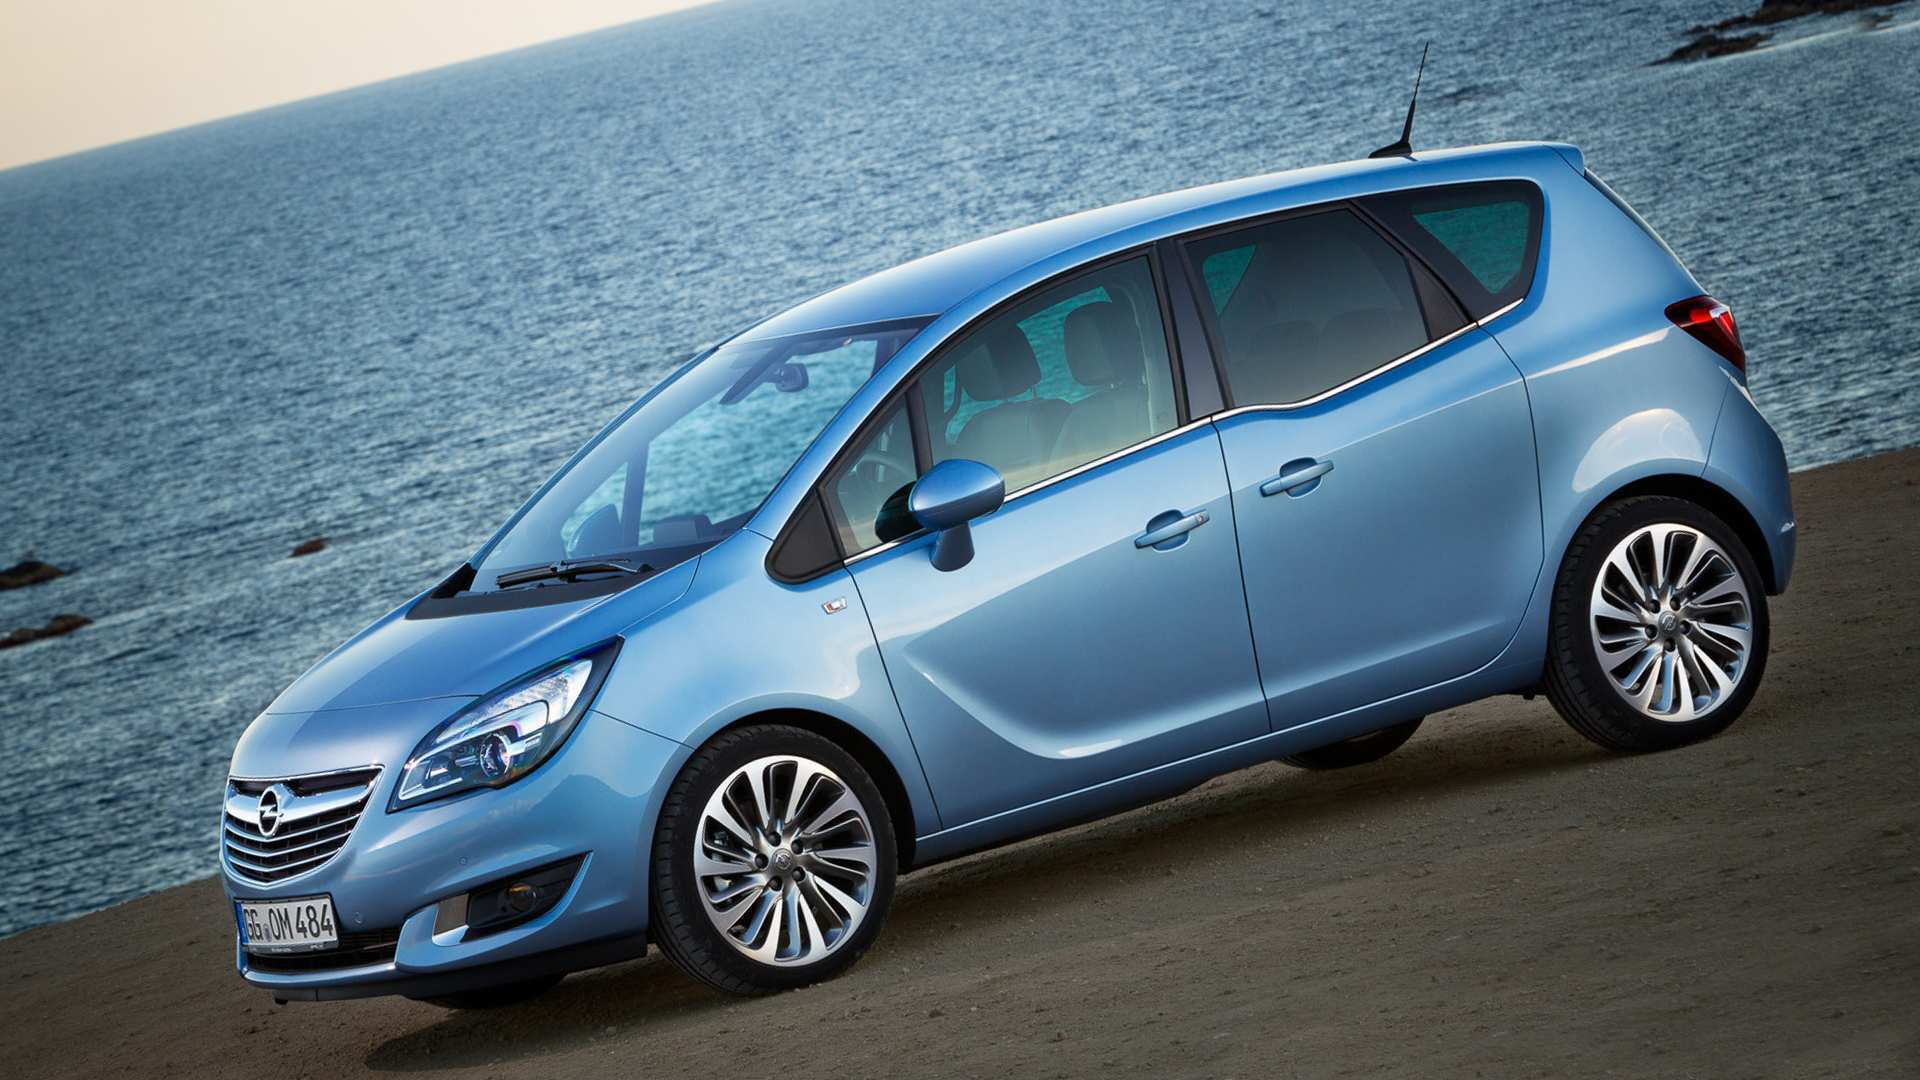 73 Best Review Opel Meriva 2019 Price with Opel Meriva 2019